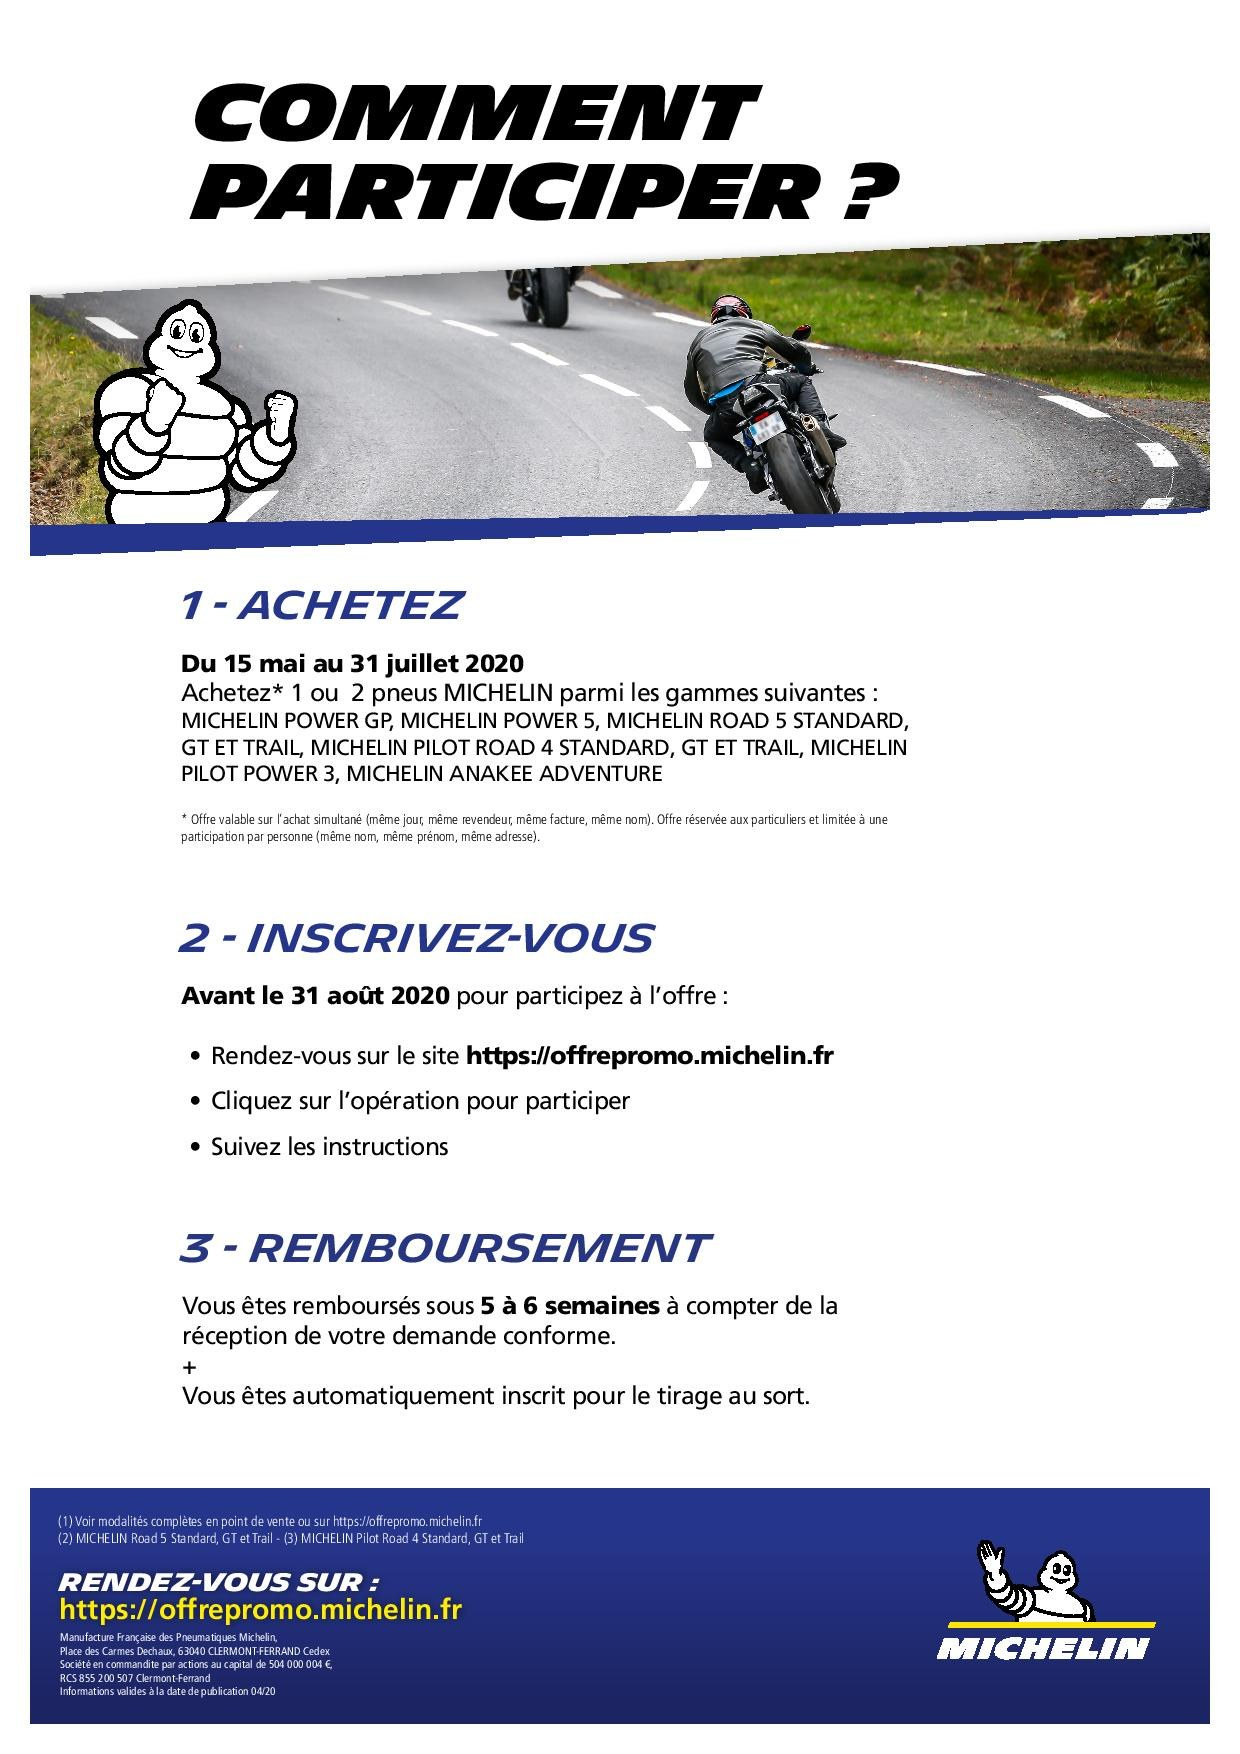 OPERATION MICHELIN du 15 mai au 31 juillet 2020